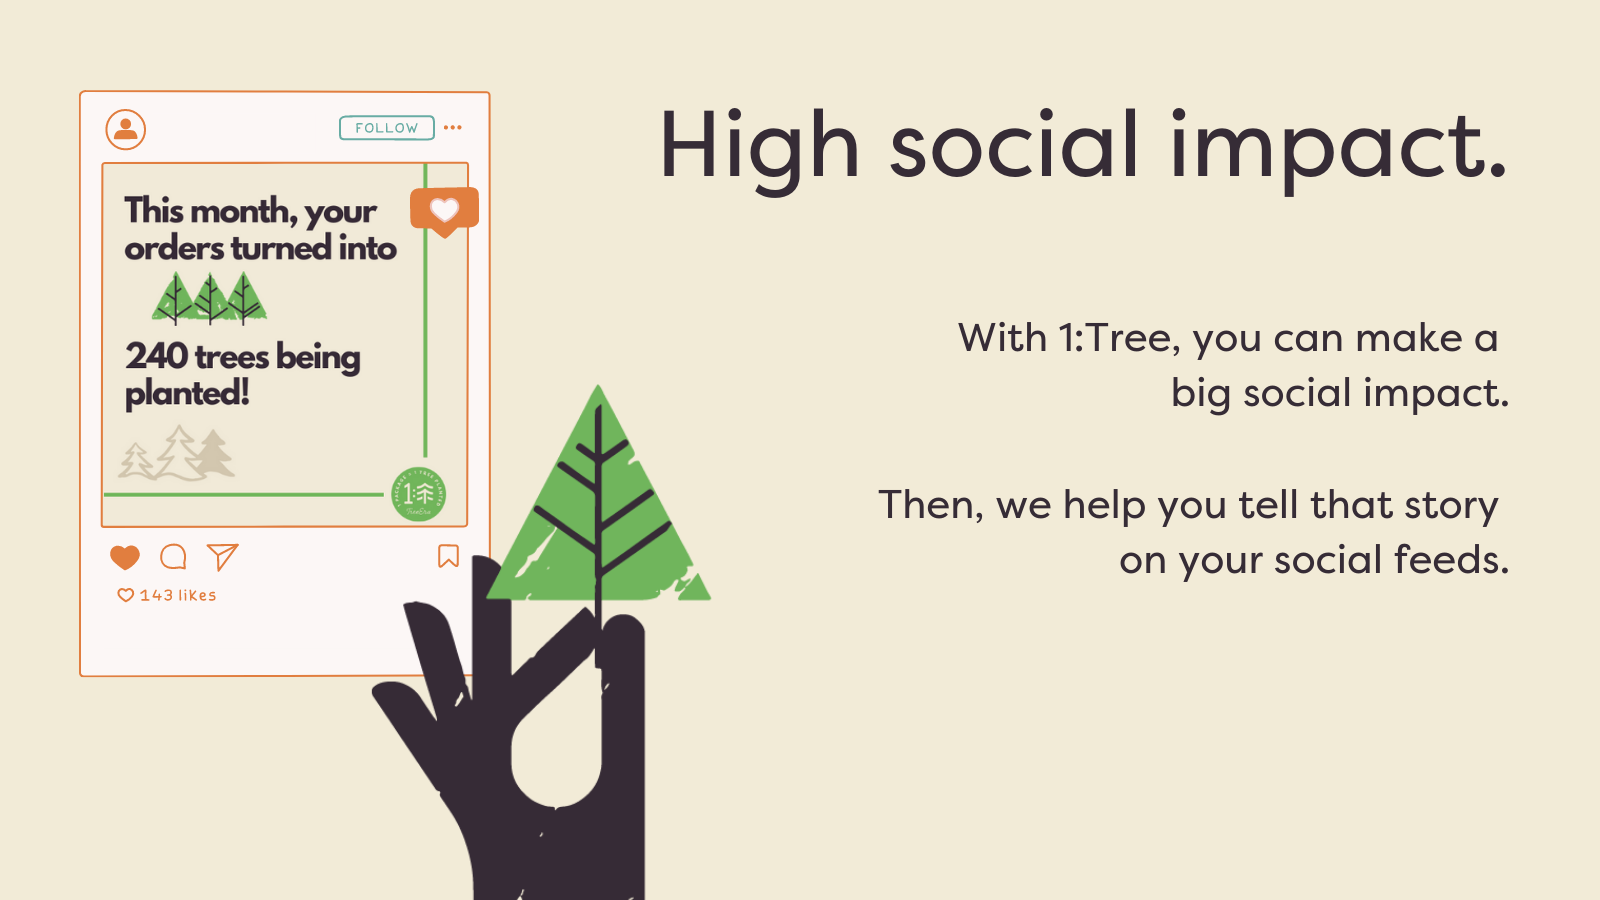 High social impact that we help share on your social feeds*.